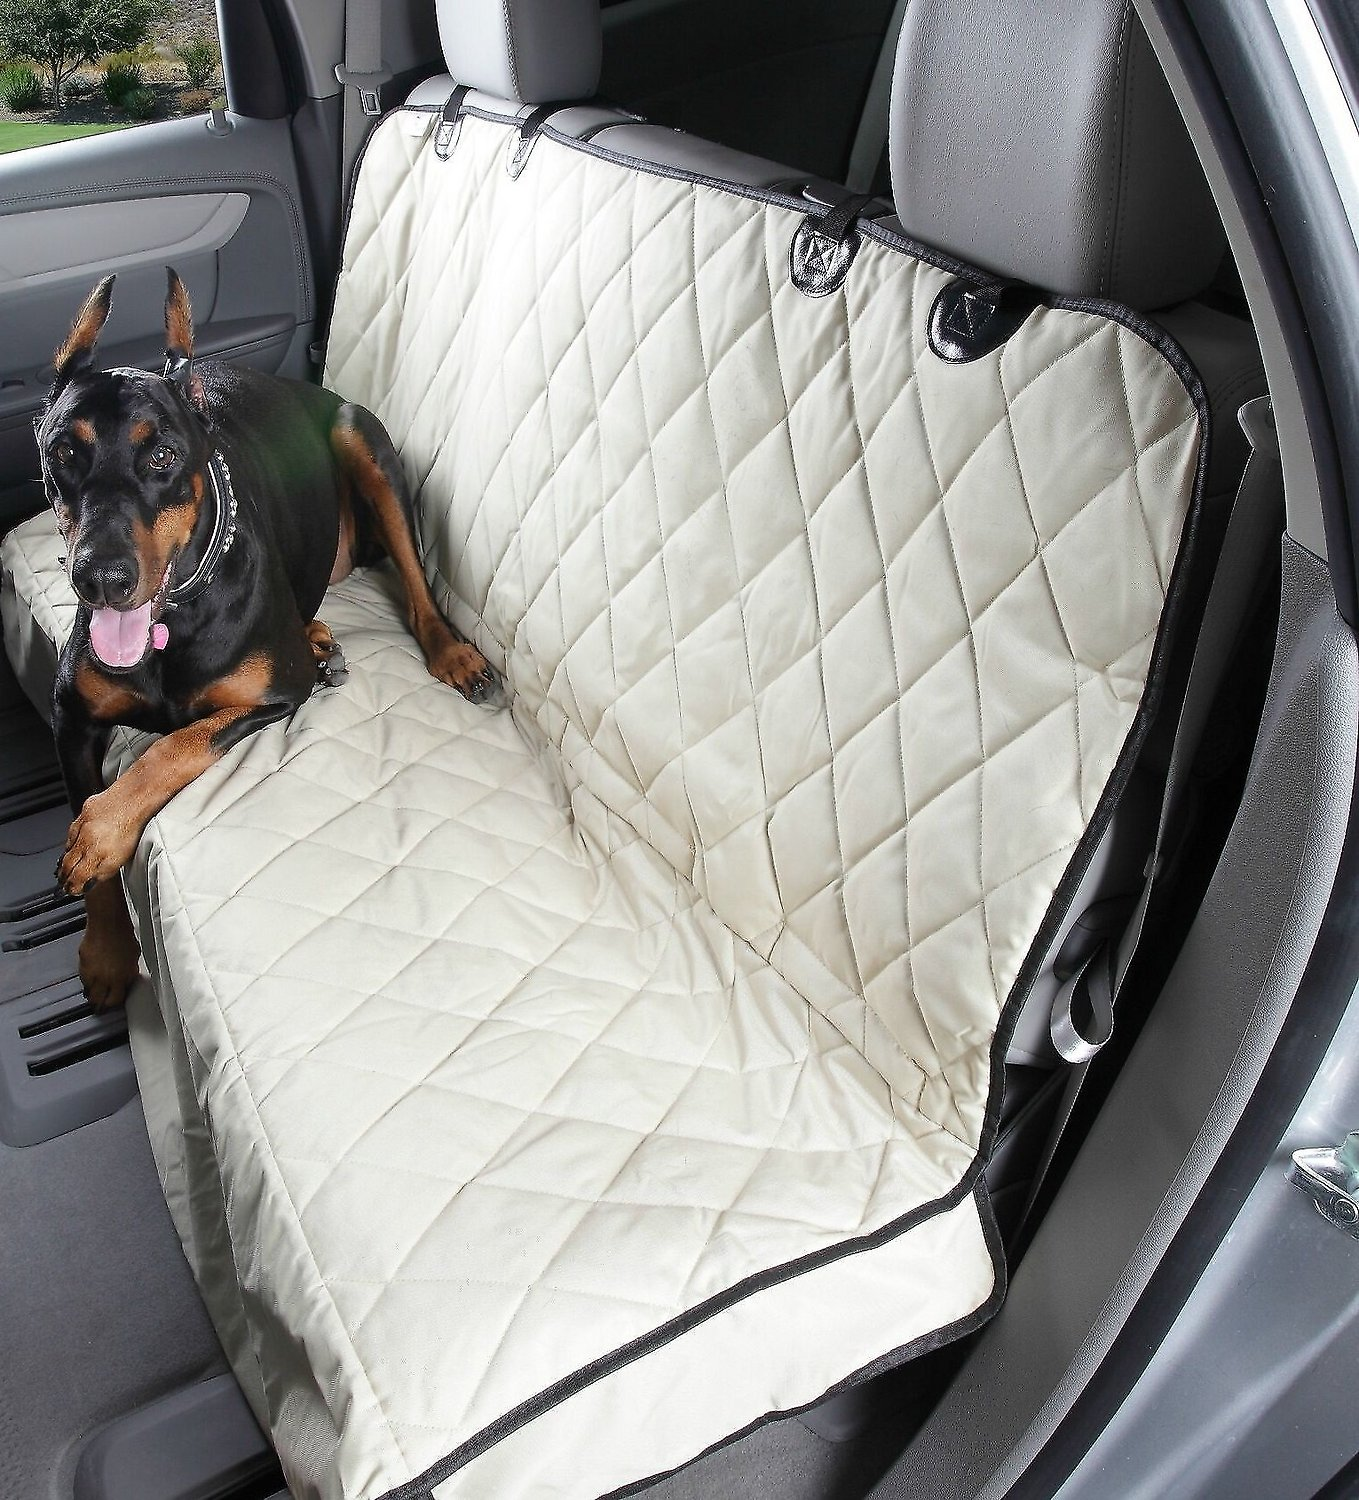 Phenomenal 4Knines Rear Bench Seat Cover With Hammock Tan Regular Caraccident5 Cool Chair Designs And Ideas Caraccident5Info